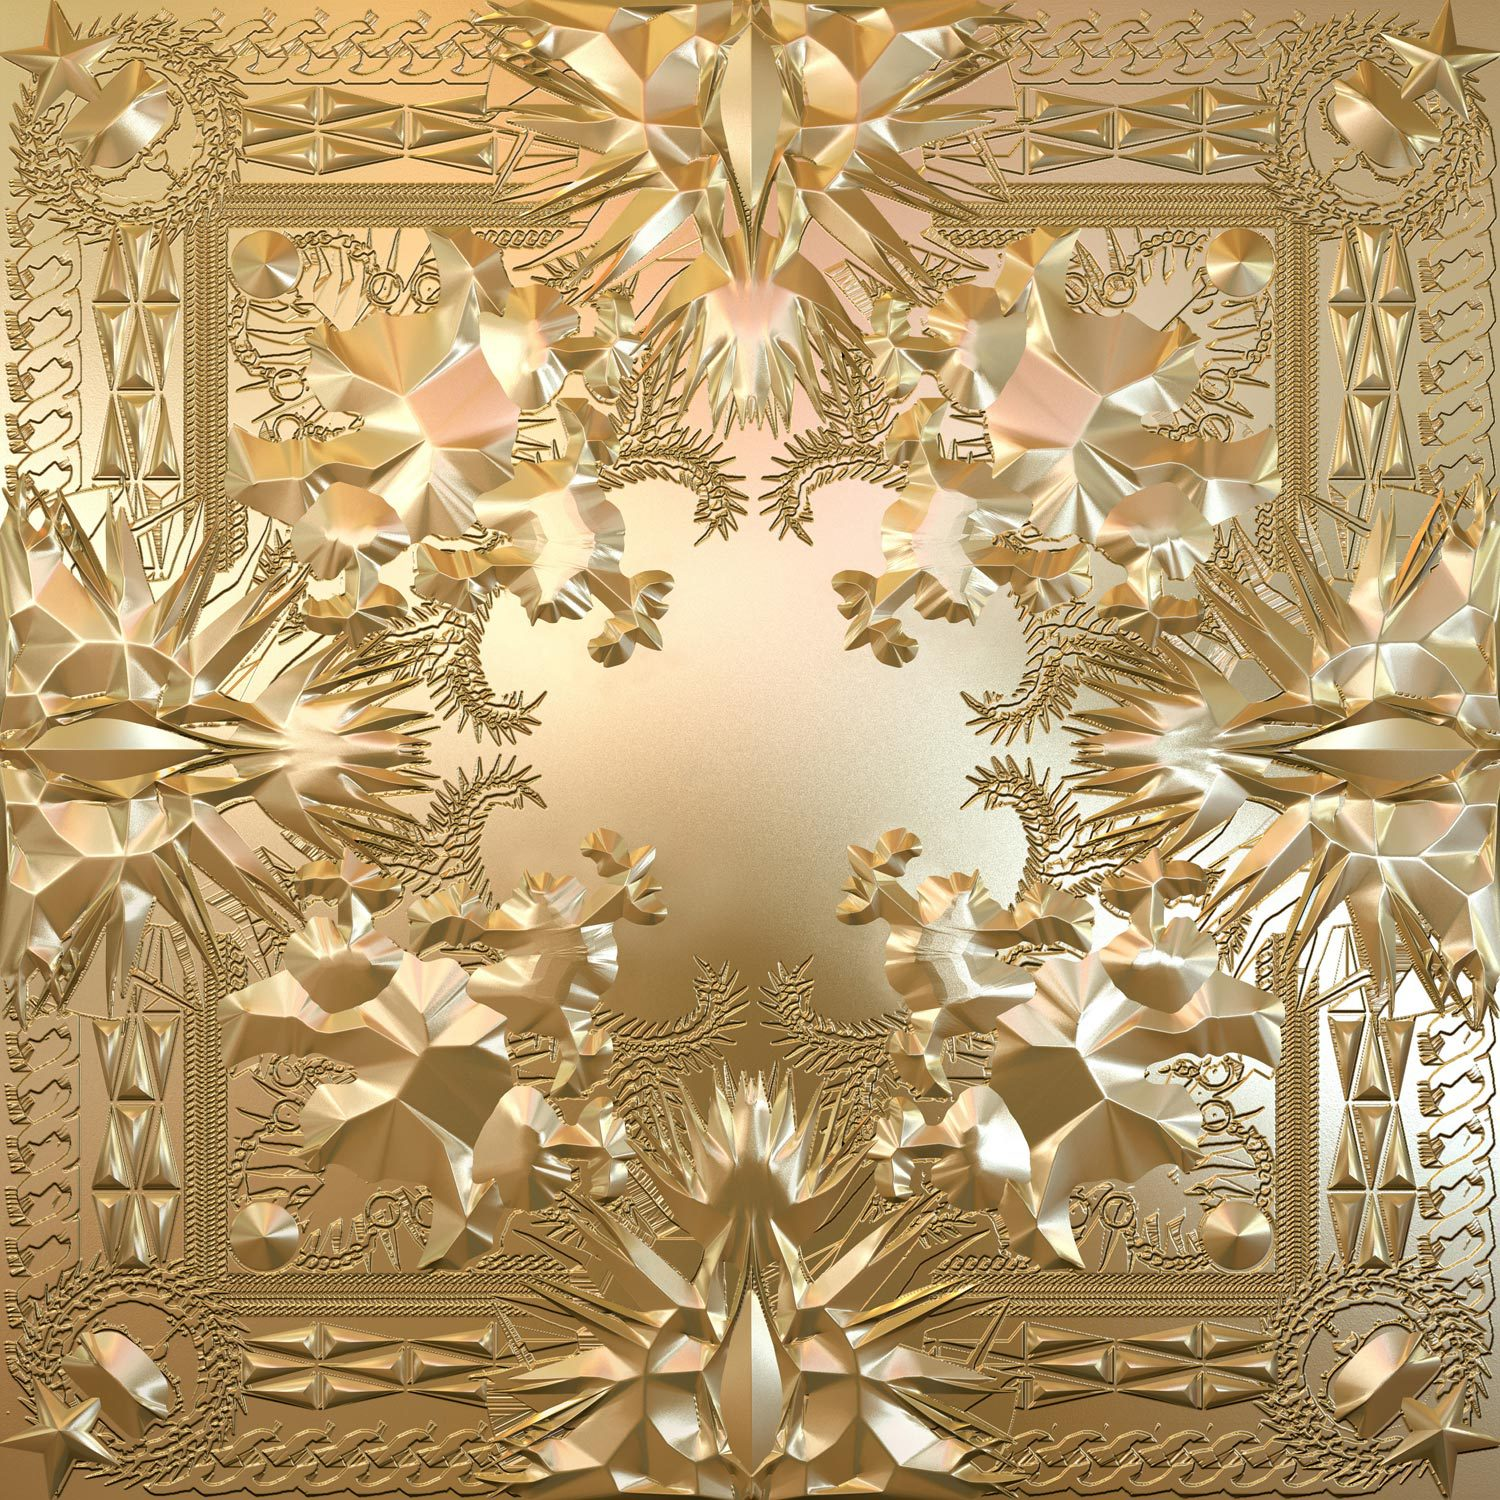 Watch The Throne – Album (Snippets)